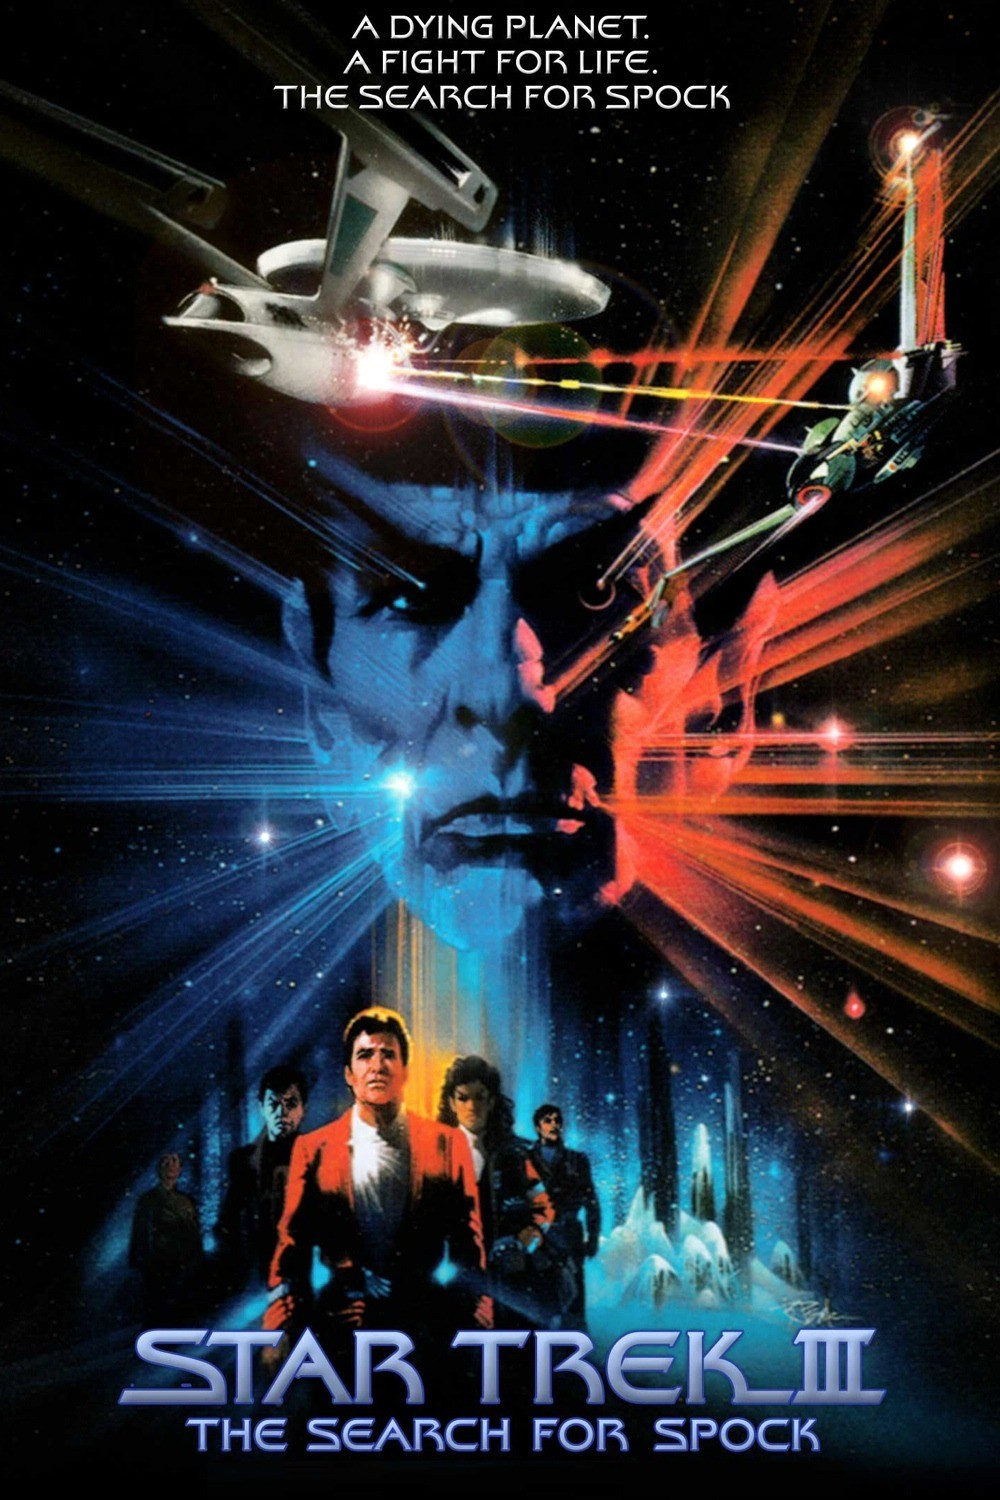 """Star Trek III The Search for Spock"" theatrical poster."